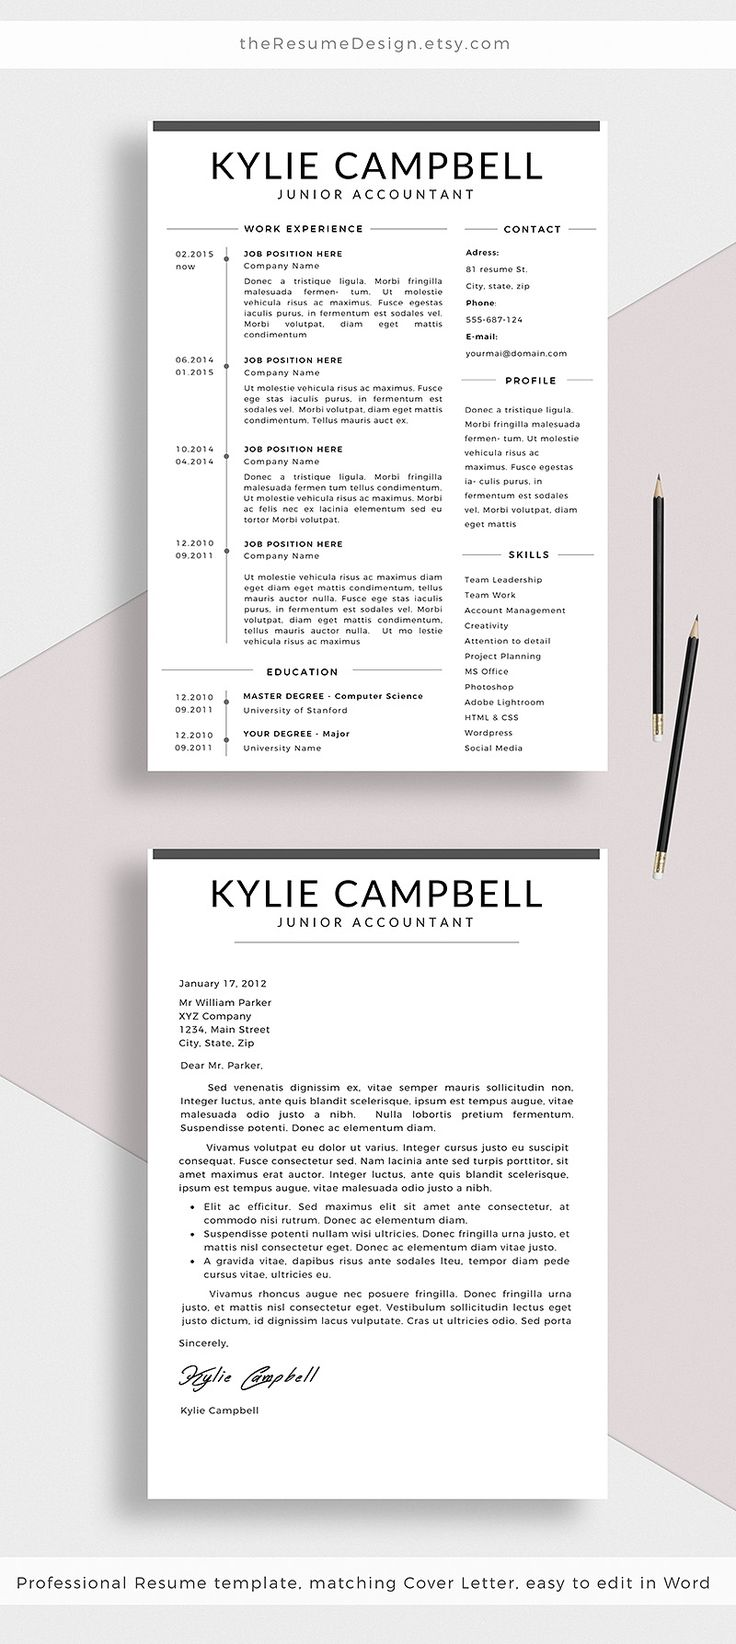 New simple and clean resume template. Stand out from the crowd with our professional designs.